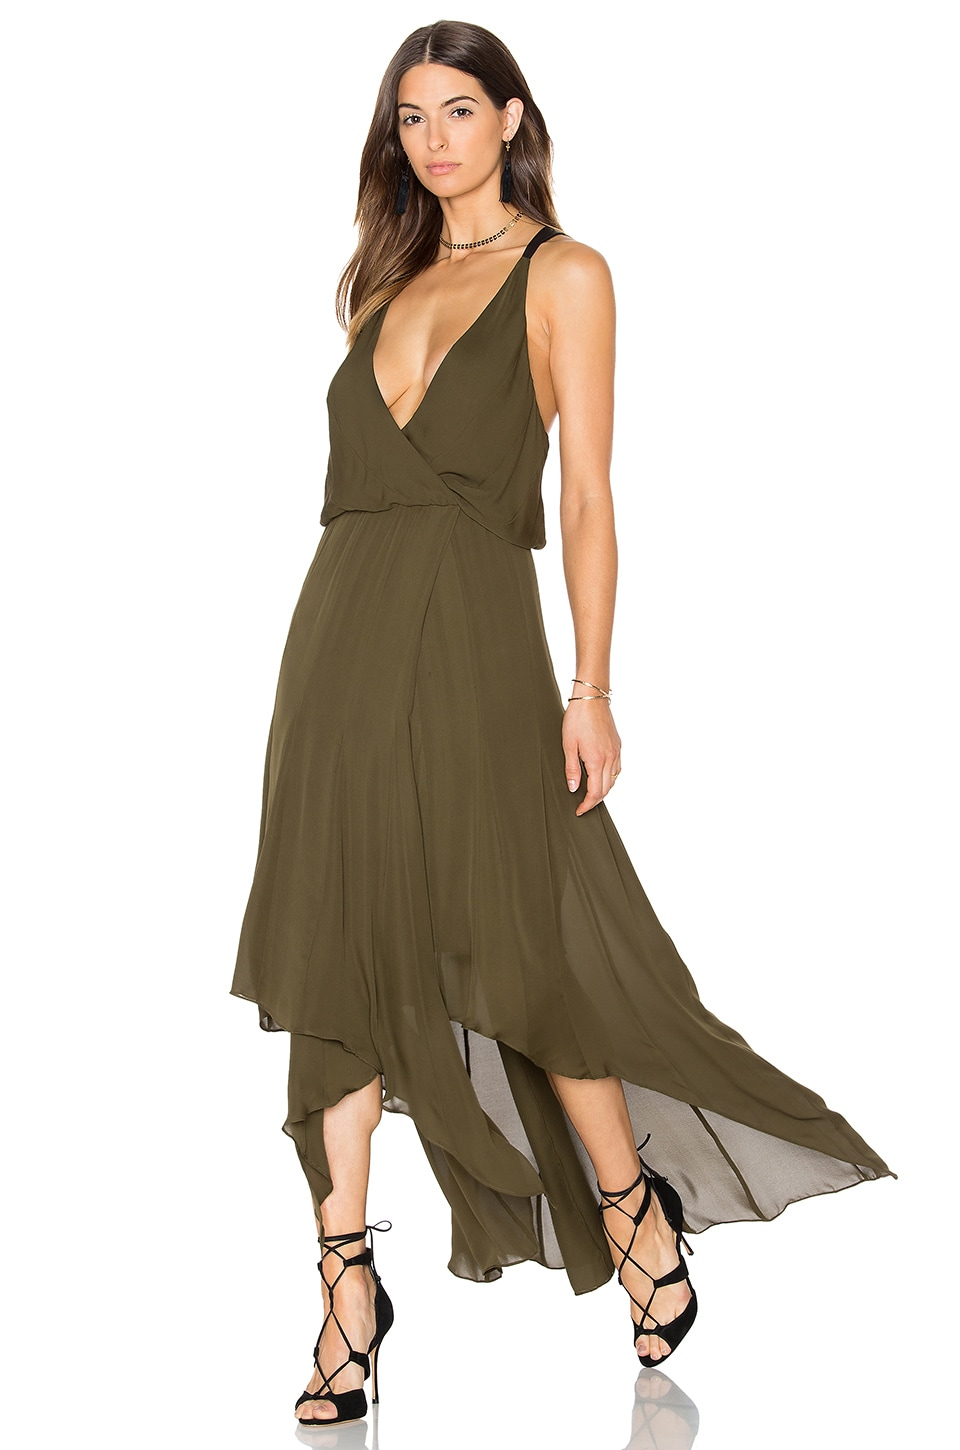 Chiffon Godets Leather Wrap Dress